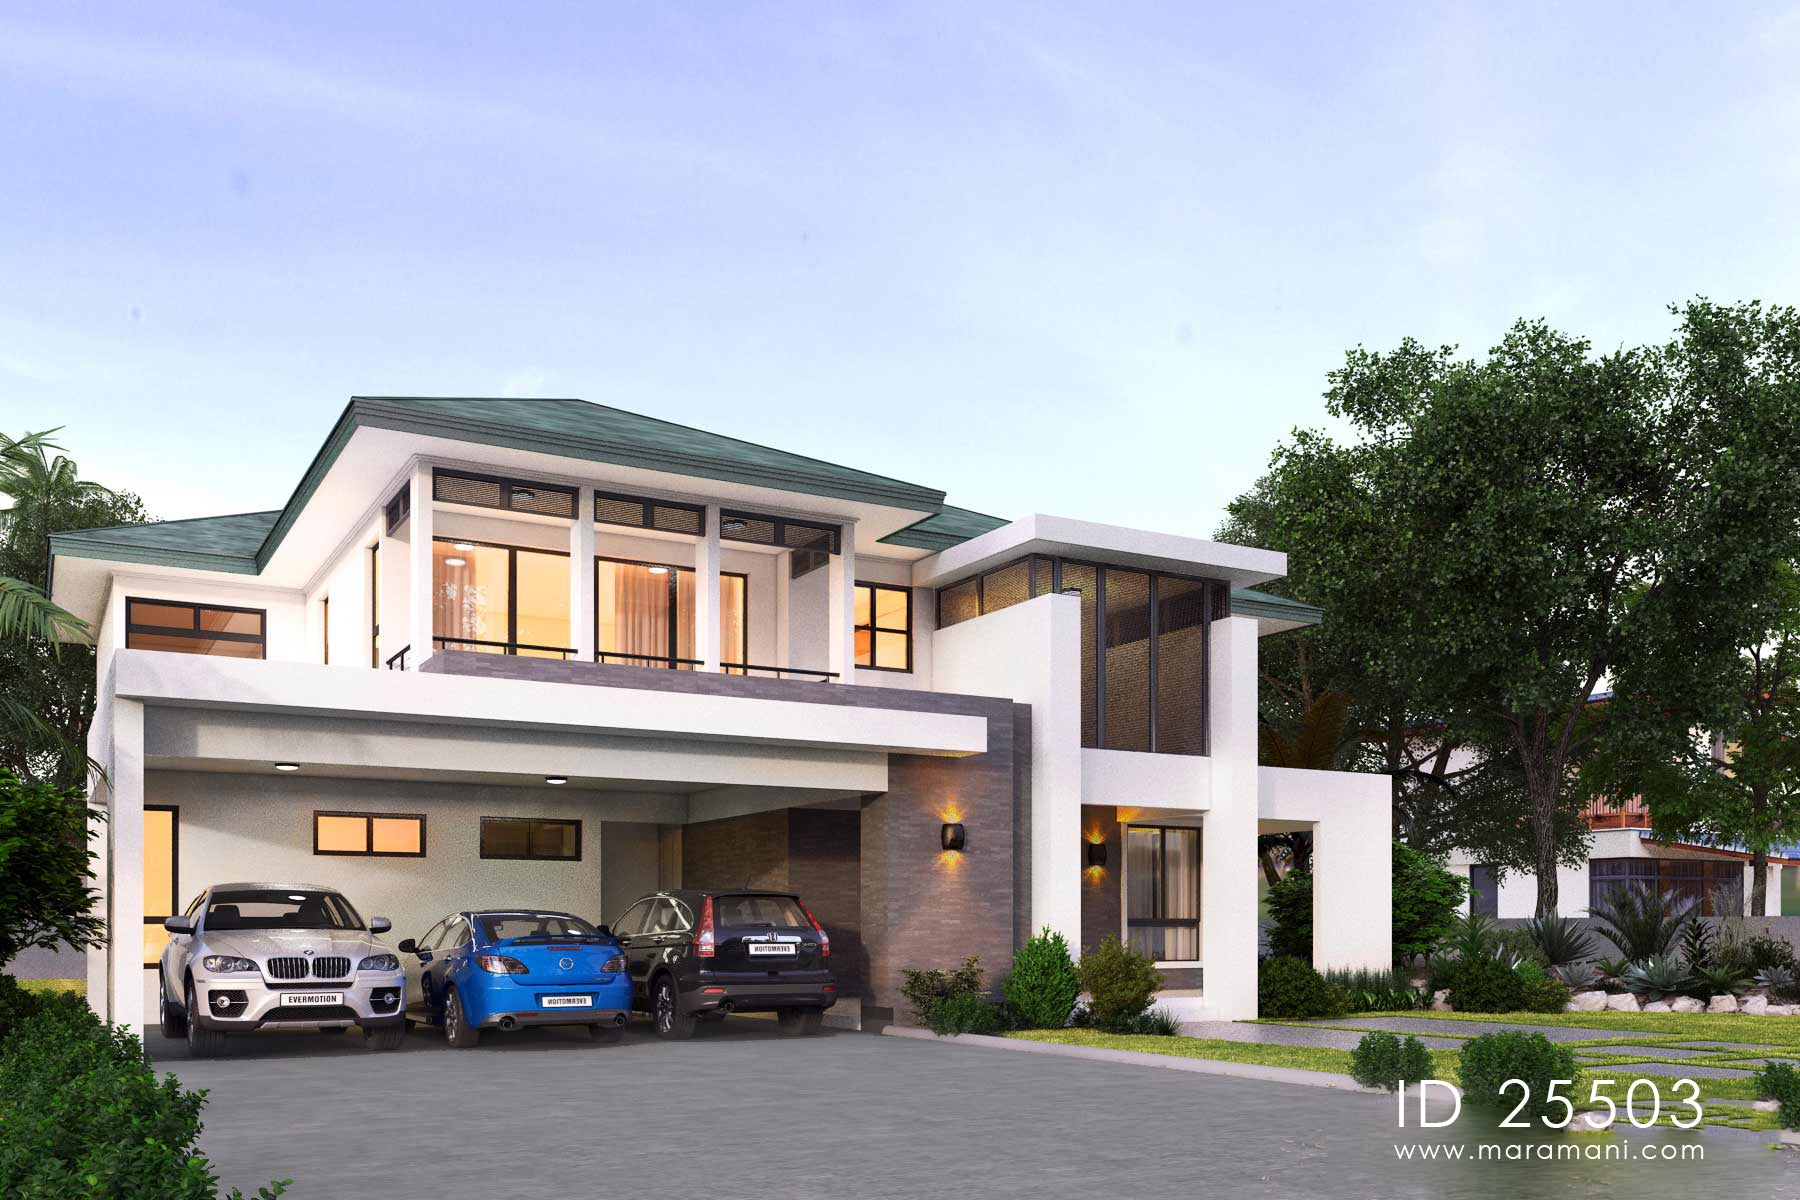 5 Bedroom Plan - ID 25503 - House Plans by Maramani